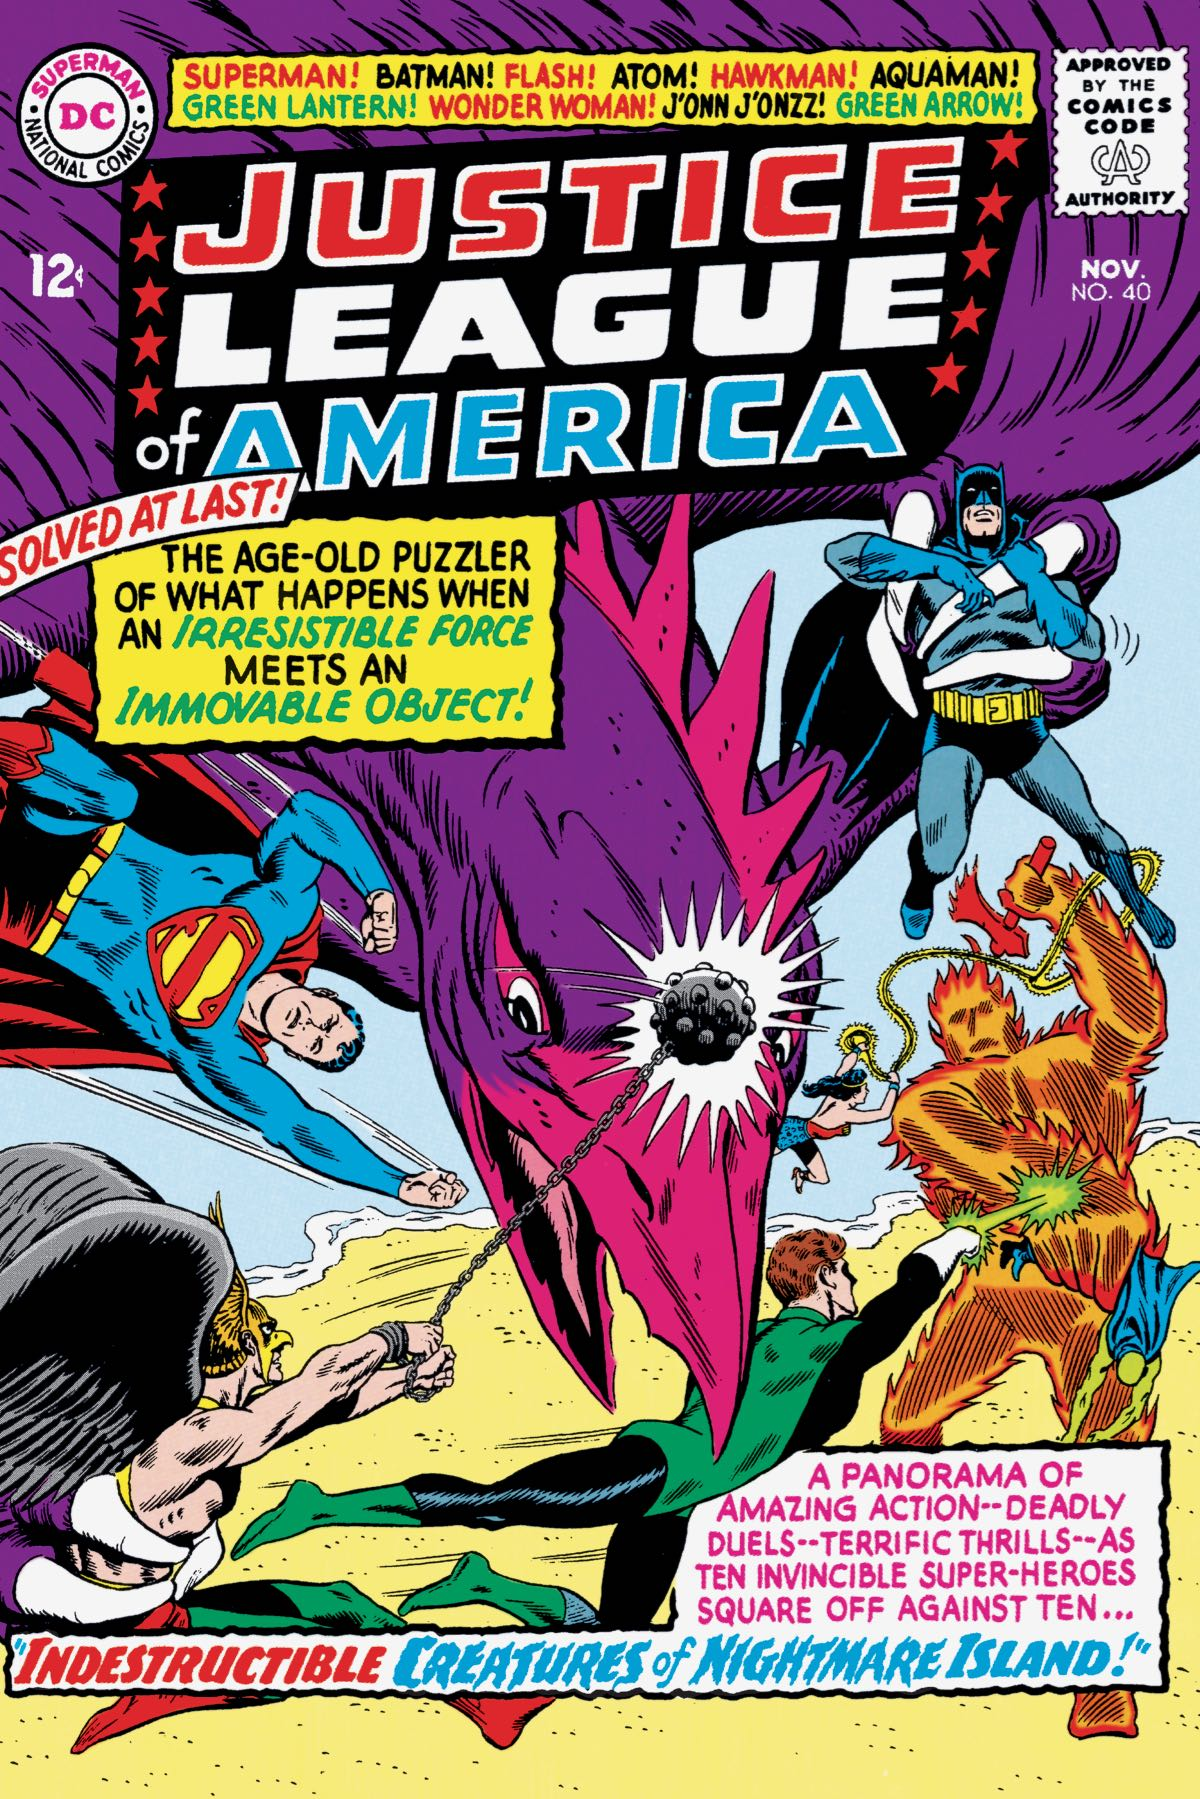 JUSTICE LEAGUE OF AMERICA: THE SILVER AGE VOL. 4 TP